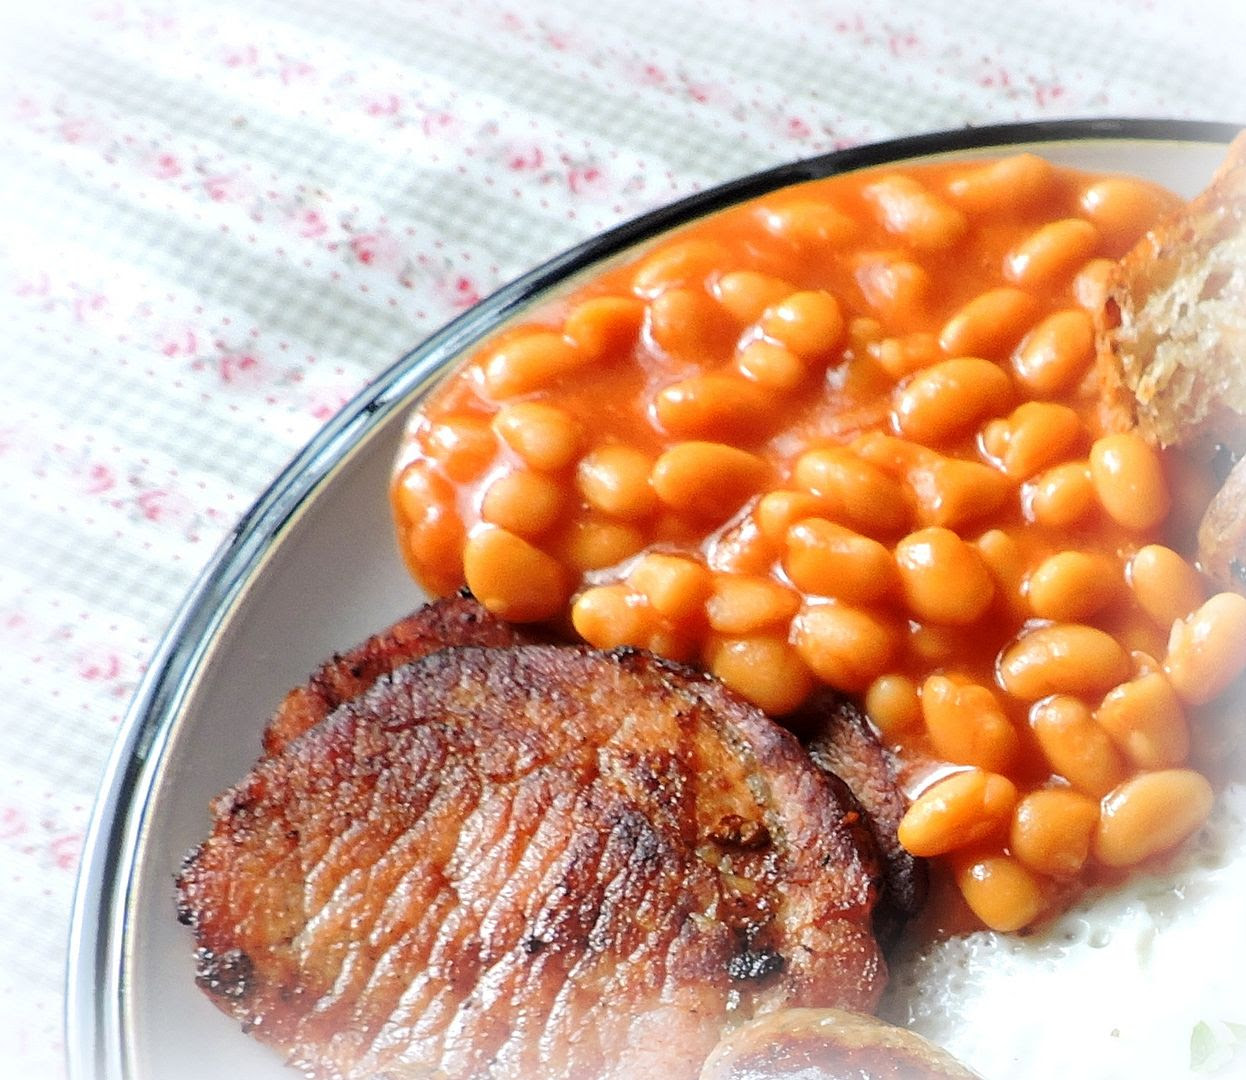 photo bacon and beans_zpsokkipek8.jpg